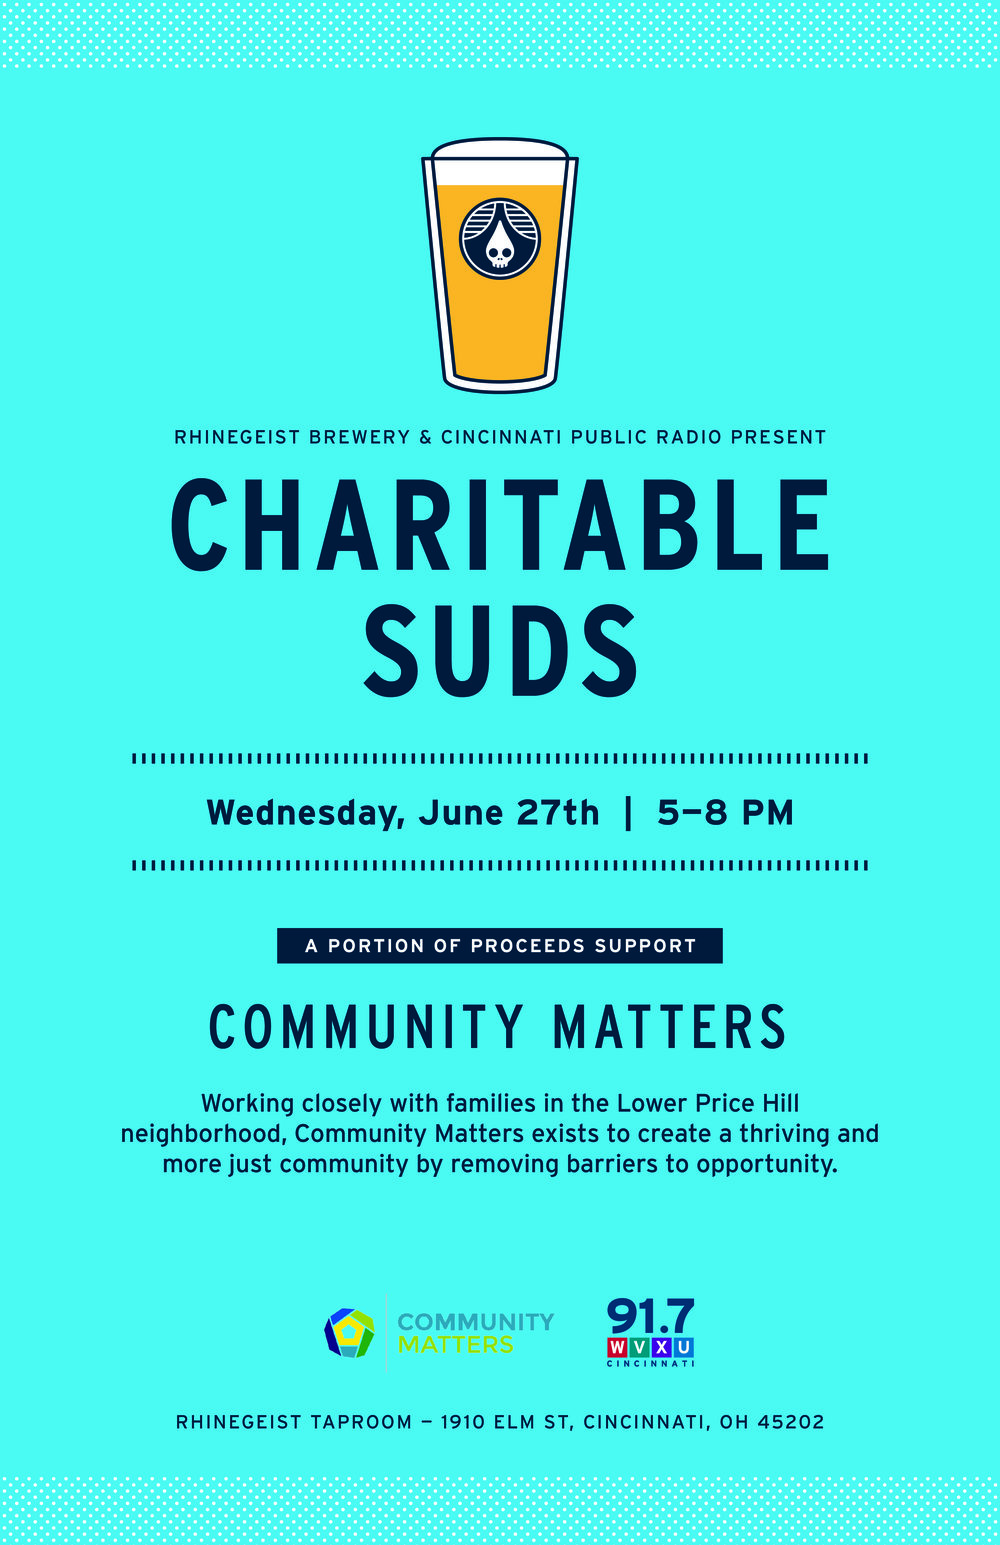 CharitableSuds_CommunityMatters_Poster-01.jpg